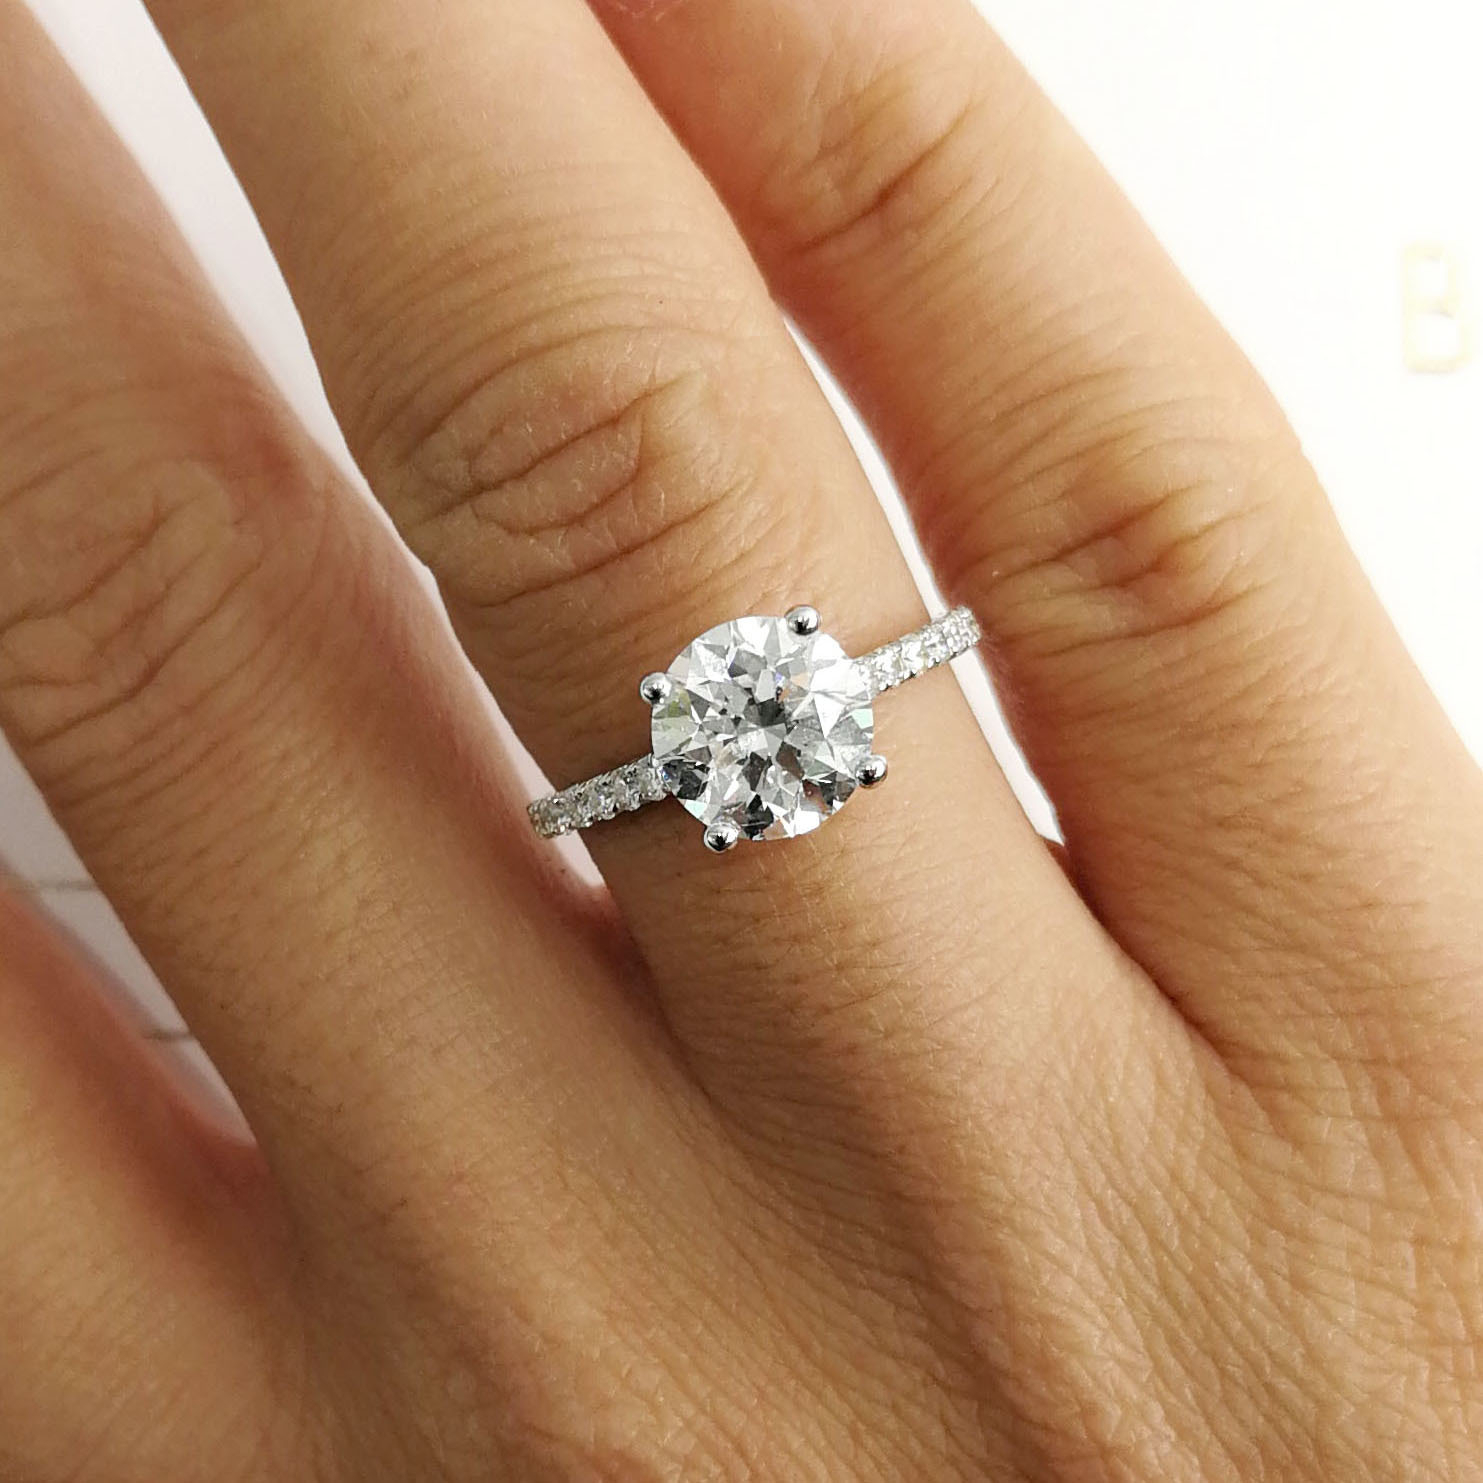 Details About 2 Carat Round Shape D – Vs2 Side Stone Diamond Gia Engagement  Ring Sizeable With Regard To Round Brilliant Engagement Rings With Pear Shaped Side Stones (Gallery 24 of 25)